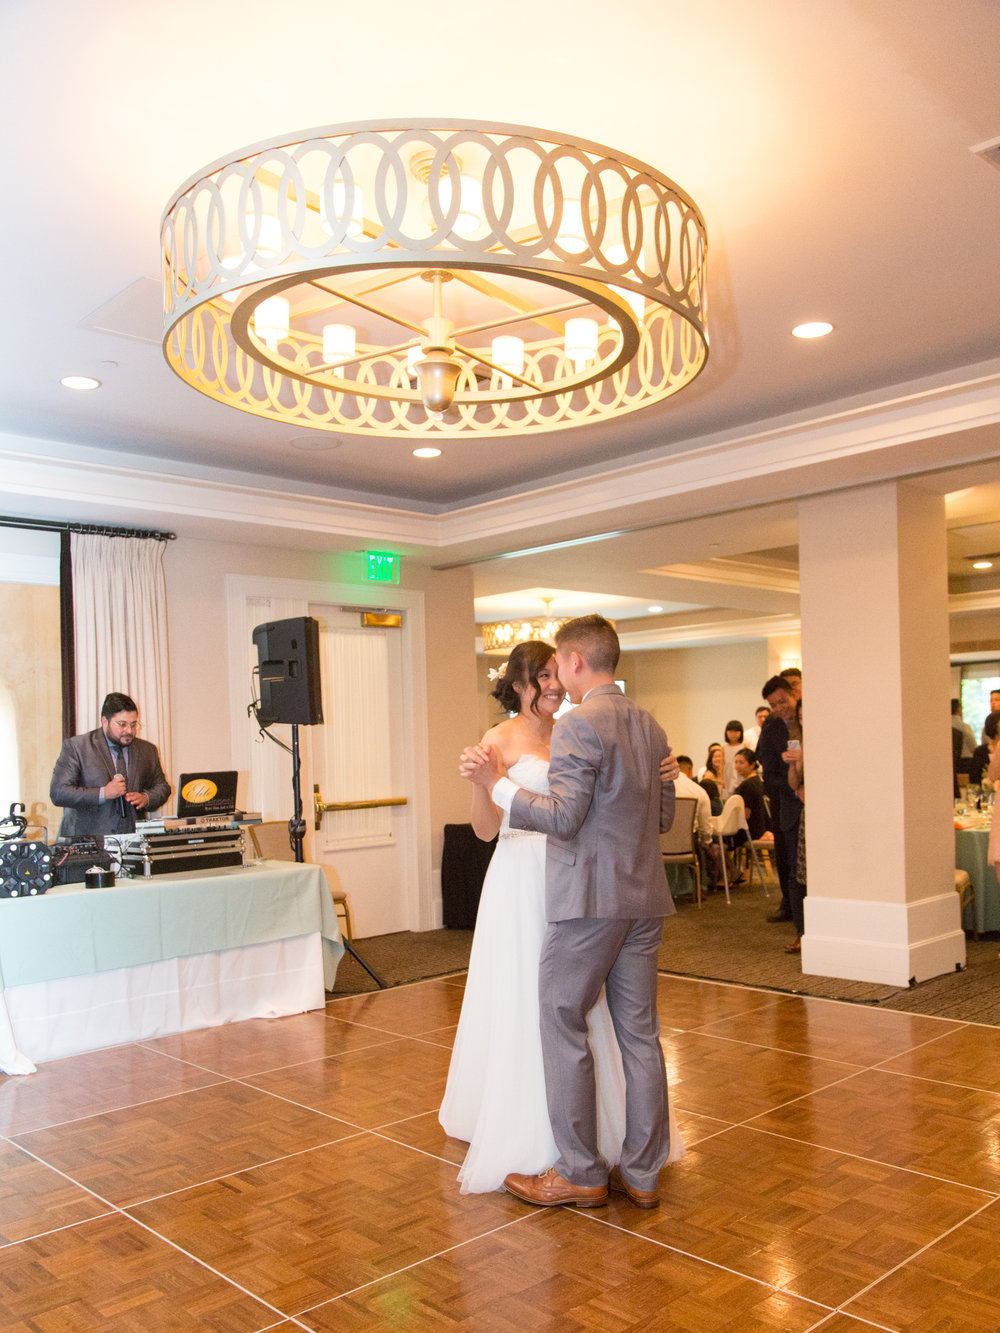 trynhphoto_wedding_photography_Standford_PaloAlto_SF_BayArea_Destination_OC_HA-407.jpg